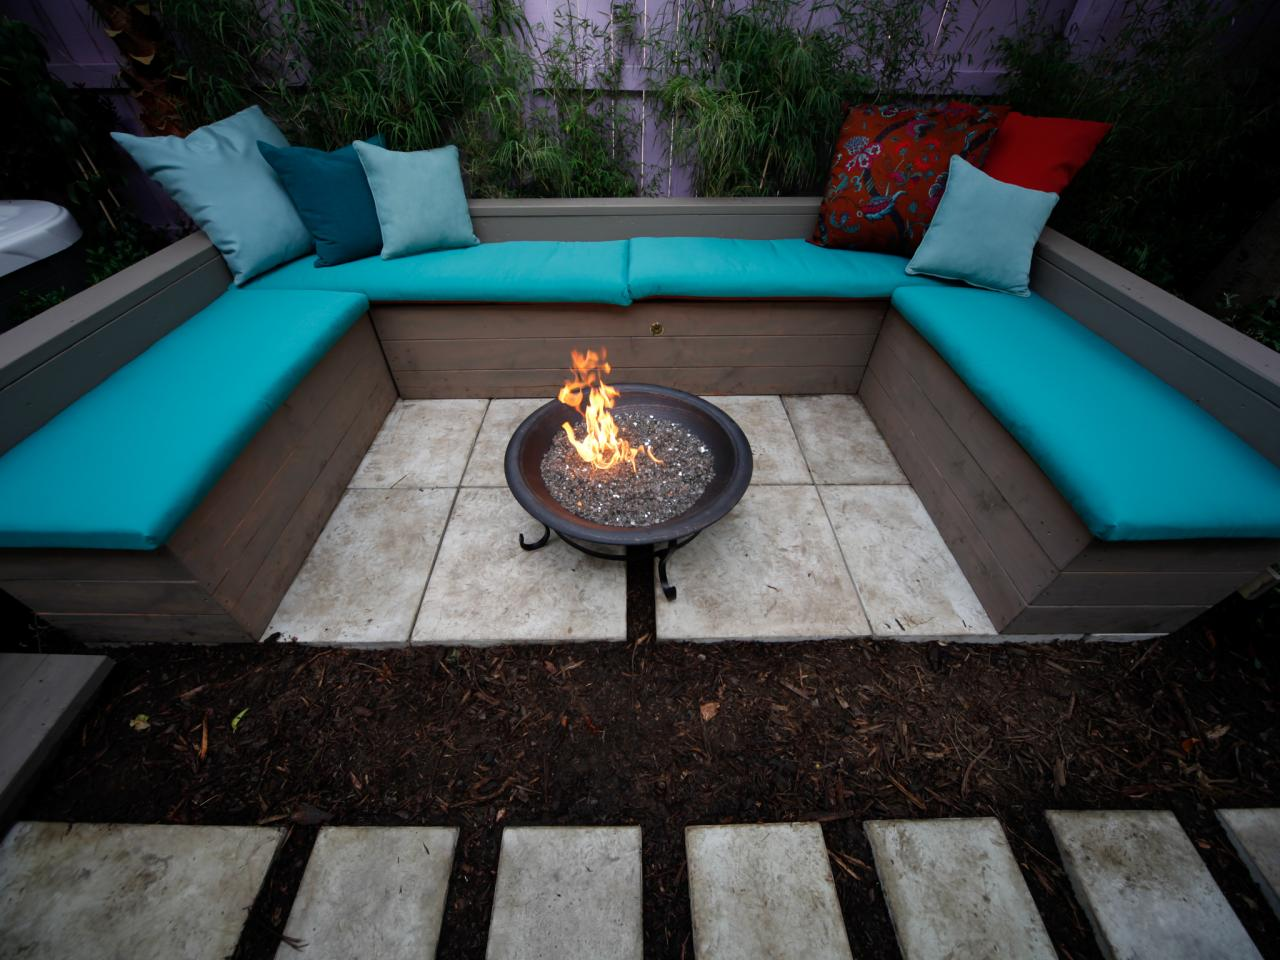 DIY Outdoor Fire Pit Table FIREPLACE DESIGN IDEAS